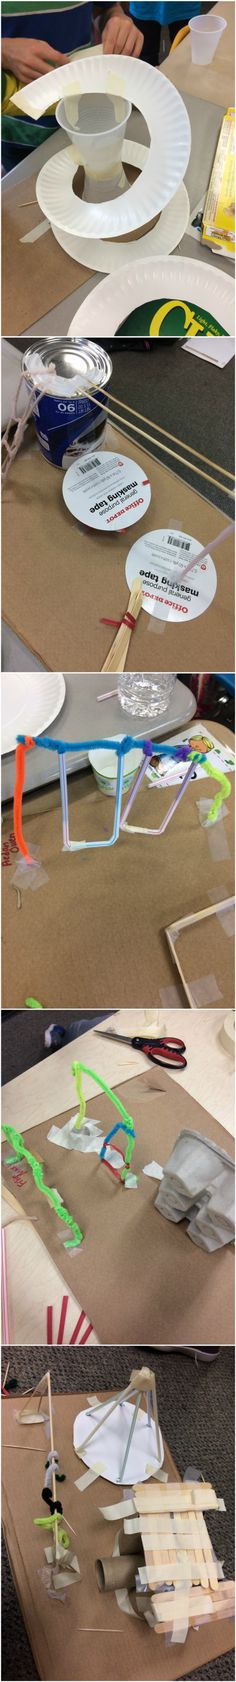 Are you a classroom teacher looking for a way to integrate STEM activities into your current curriculum? If so, this product might be just what you are looking for! This contains STEM challenges to use during the month of September.   We have done all the research and planning for you. There are 10 activities for you to choose from. We have tried to include activities that will supplement what you are already doing in your classroom.